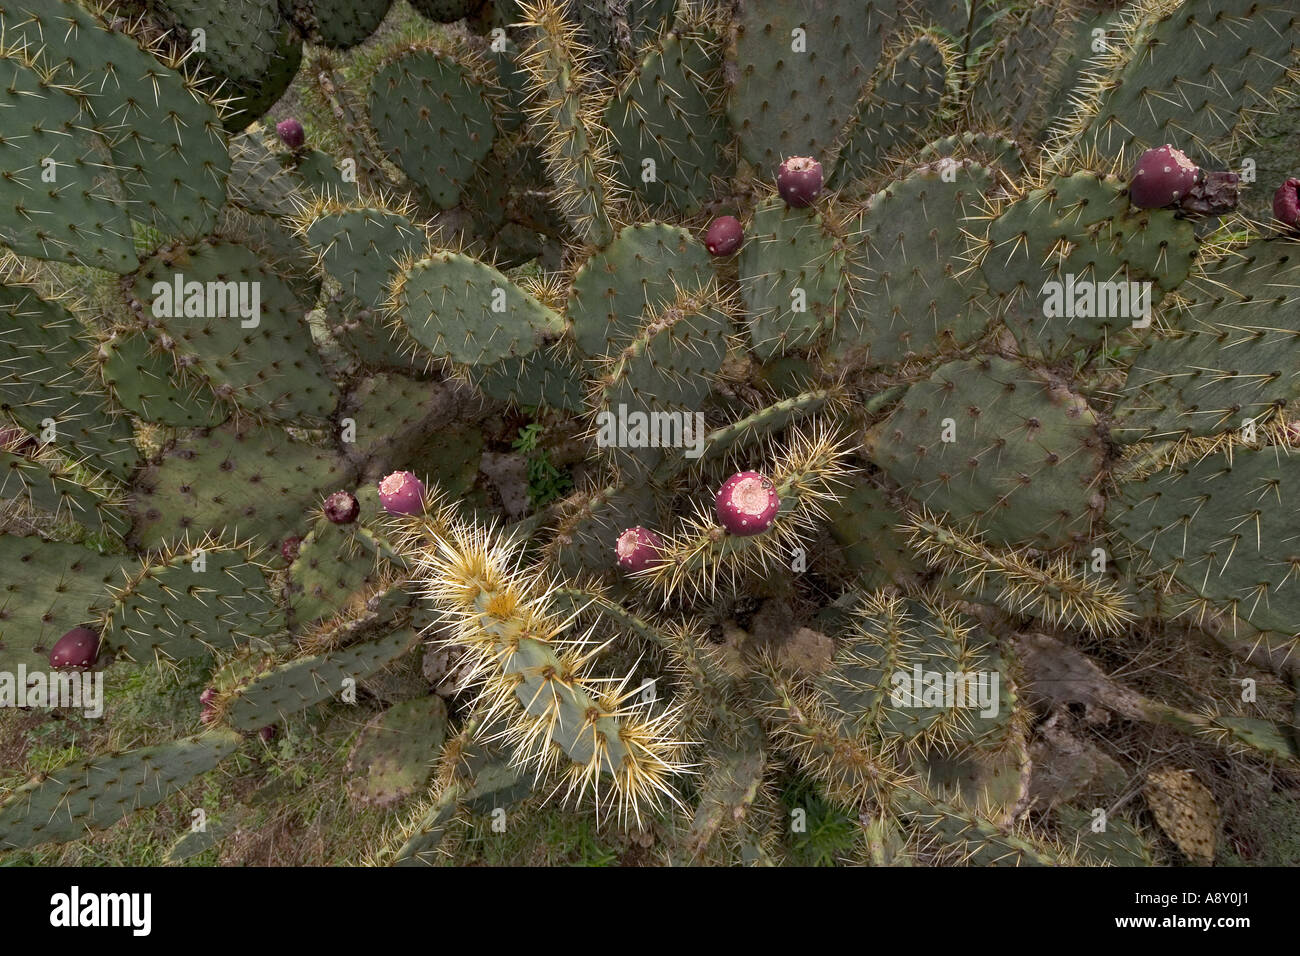 Prickly pear cactus in fructification (Mexico). Opuntia robusta en fruits (Mexique). Stock Photo